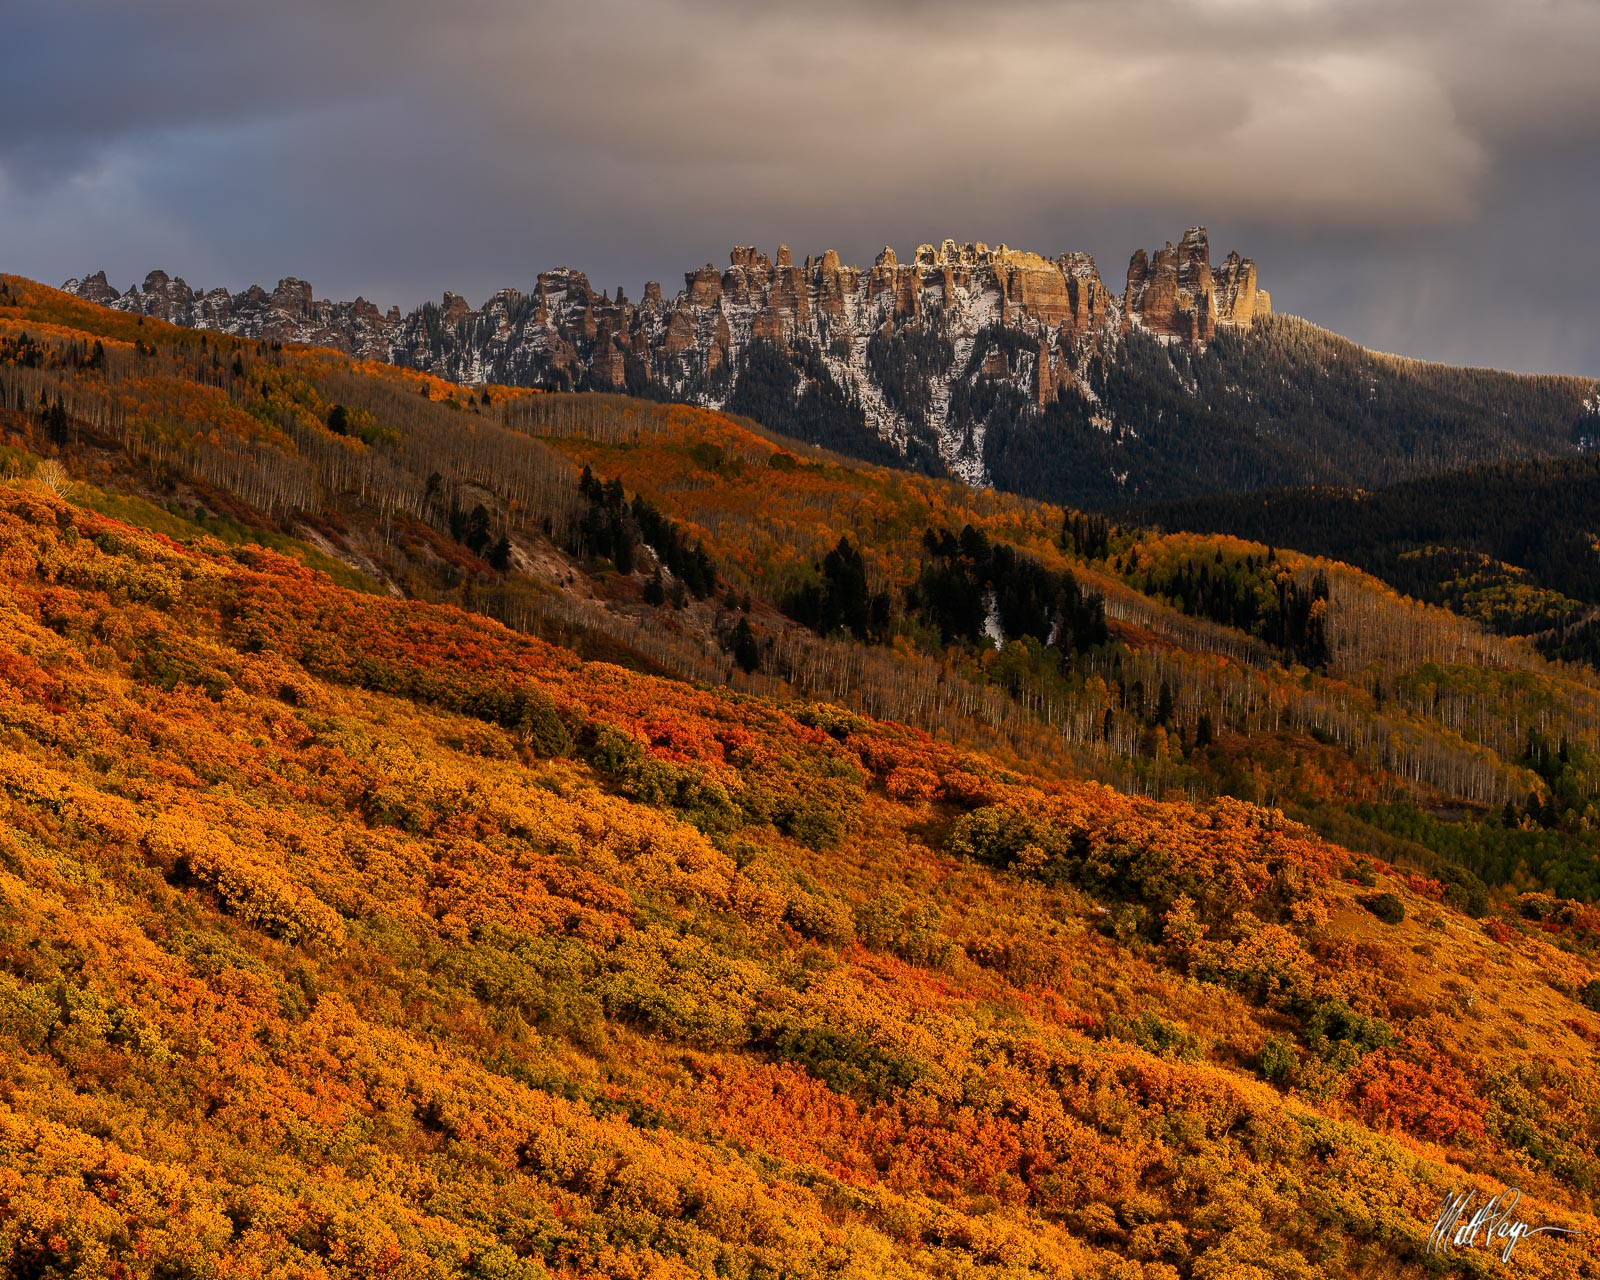 Cimarron Ridge is a really amazing rock feature near Ridgway, Colorado. Here, the scene is adorned with autumn scrub oak and...